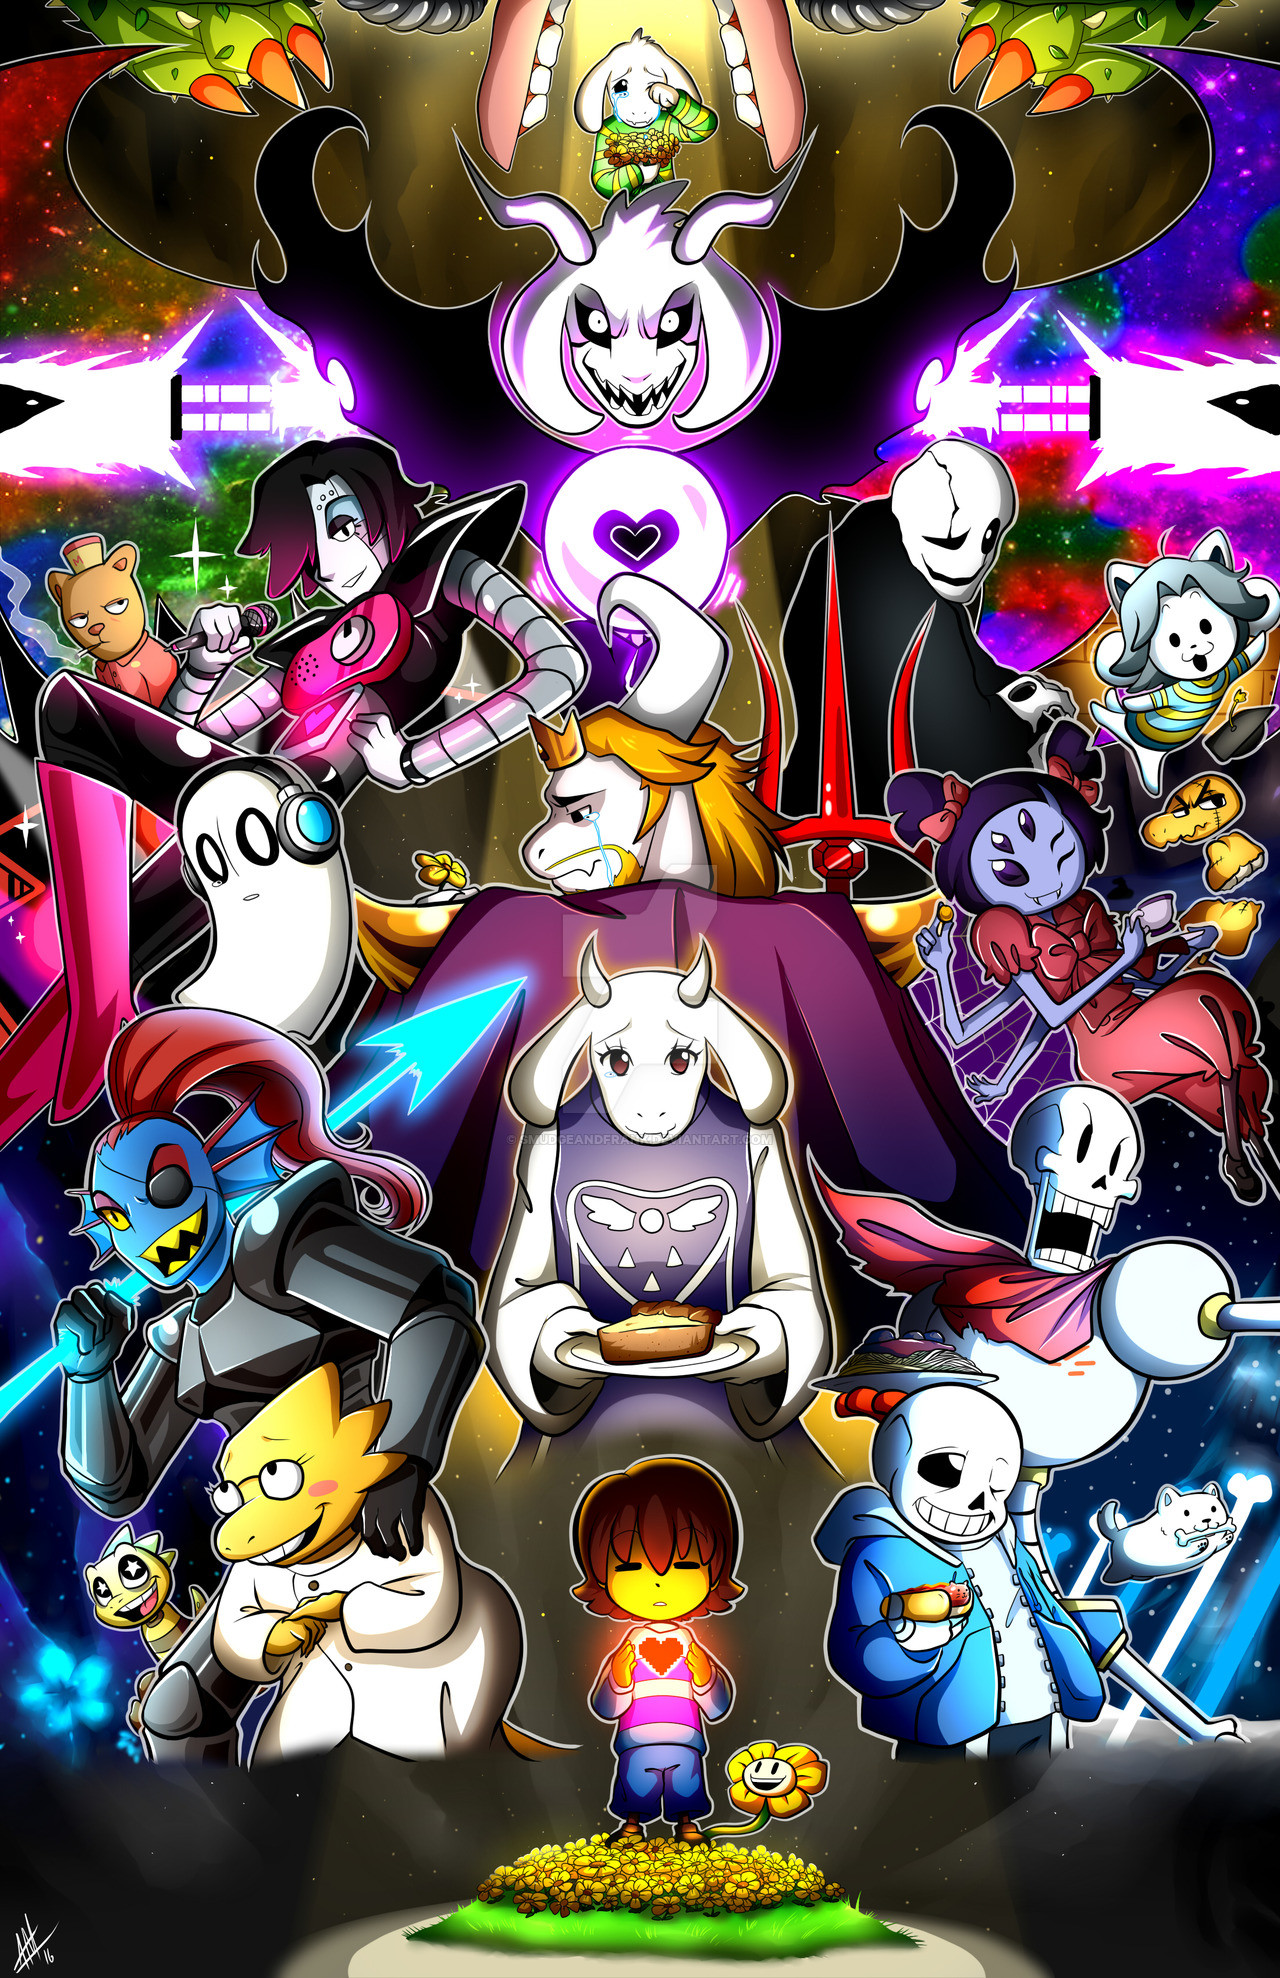 Res: 1280x1978, UNDERTALE-The Game images Undertale HD wallpaper and background photos